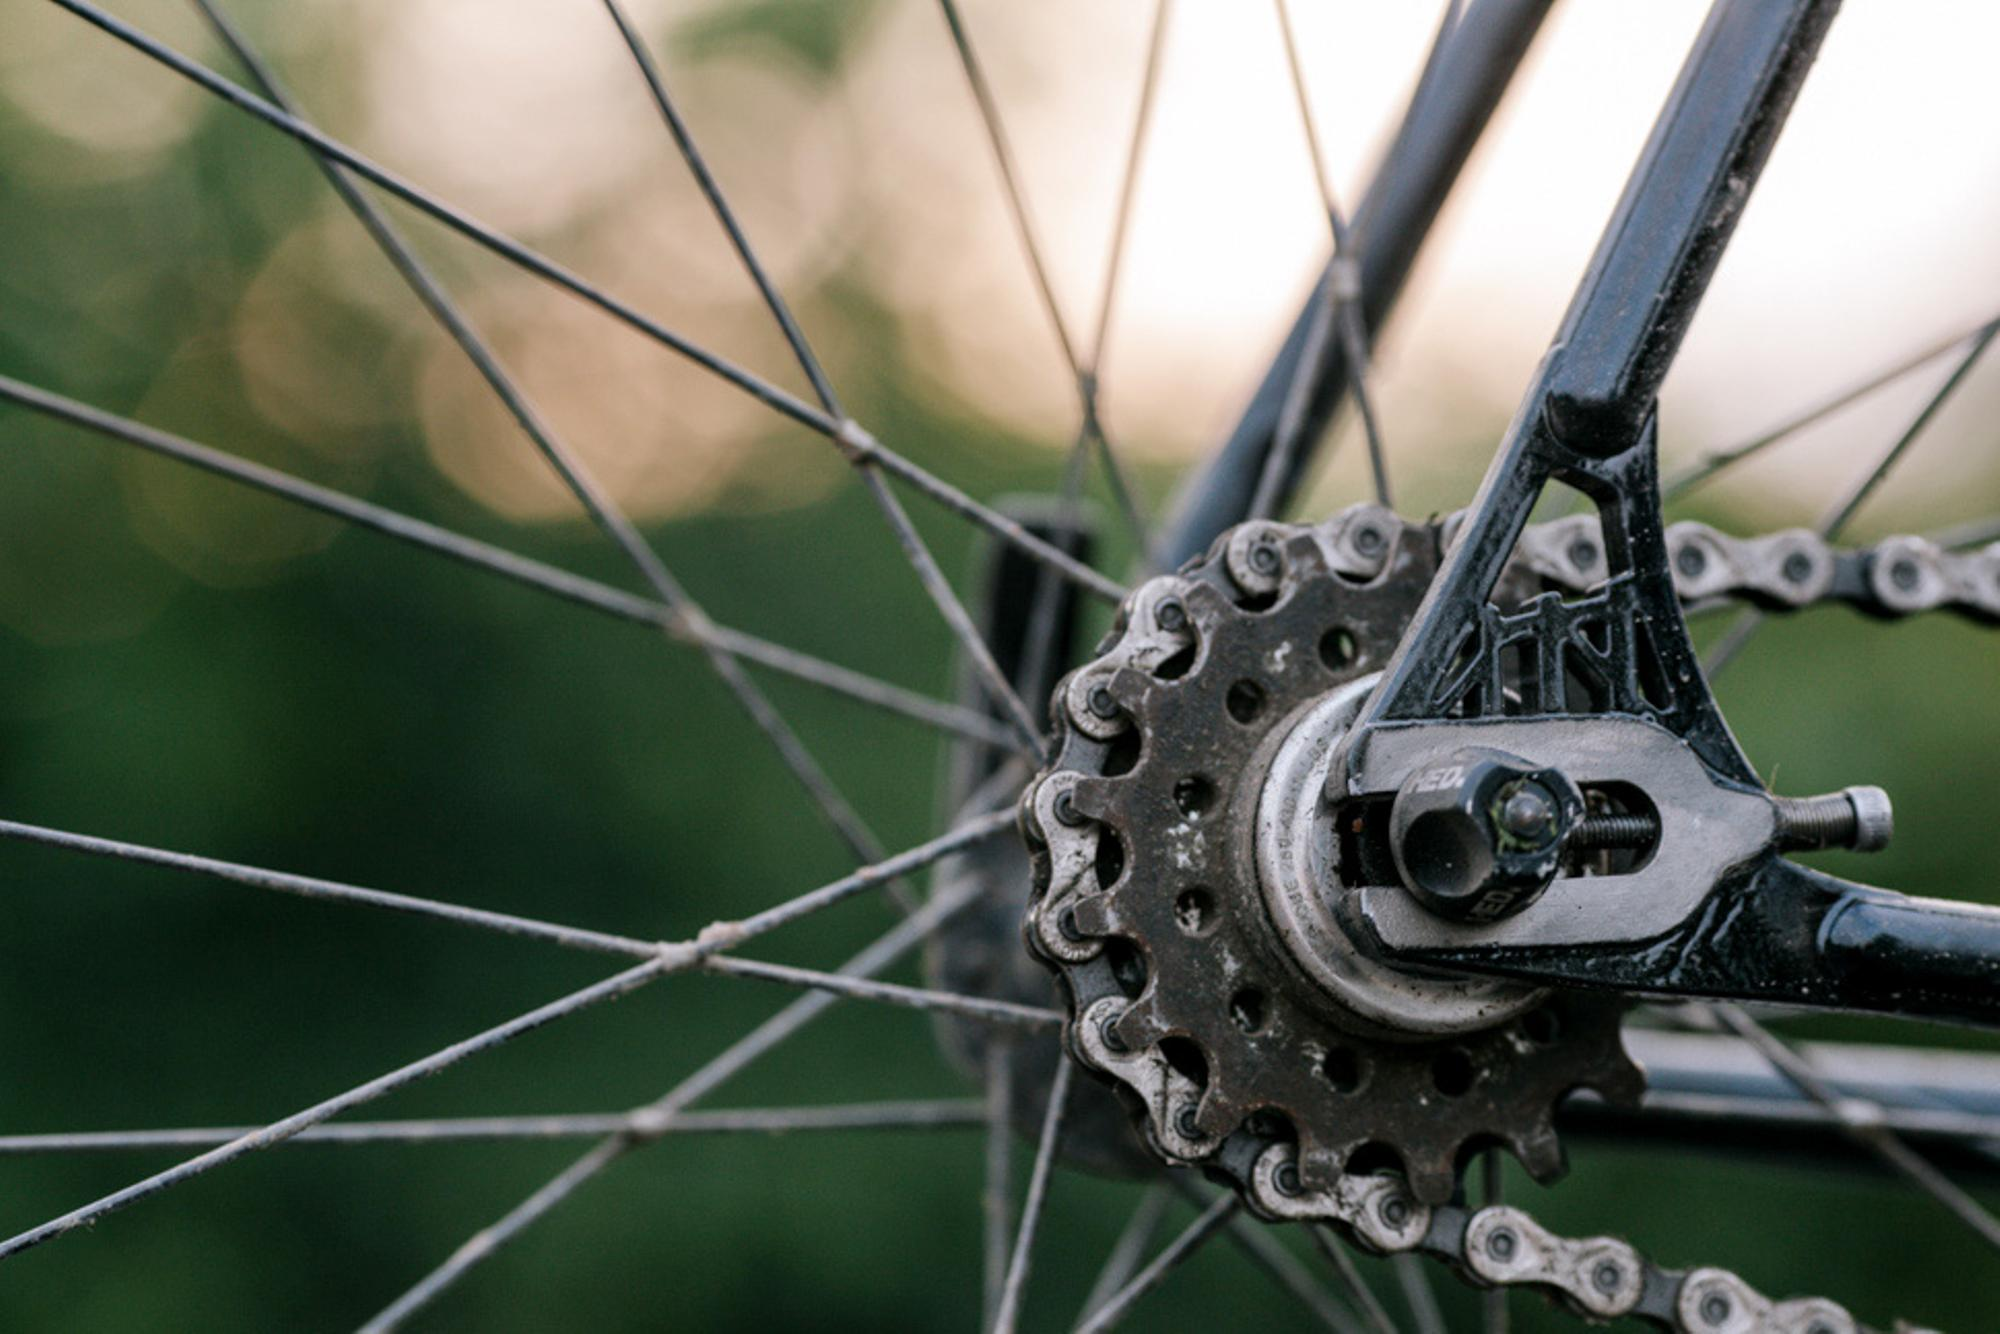 Beautiful Bicycle: Fulton Brewery Racing Team All City Nature Boy Cross